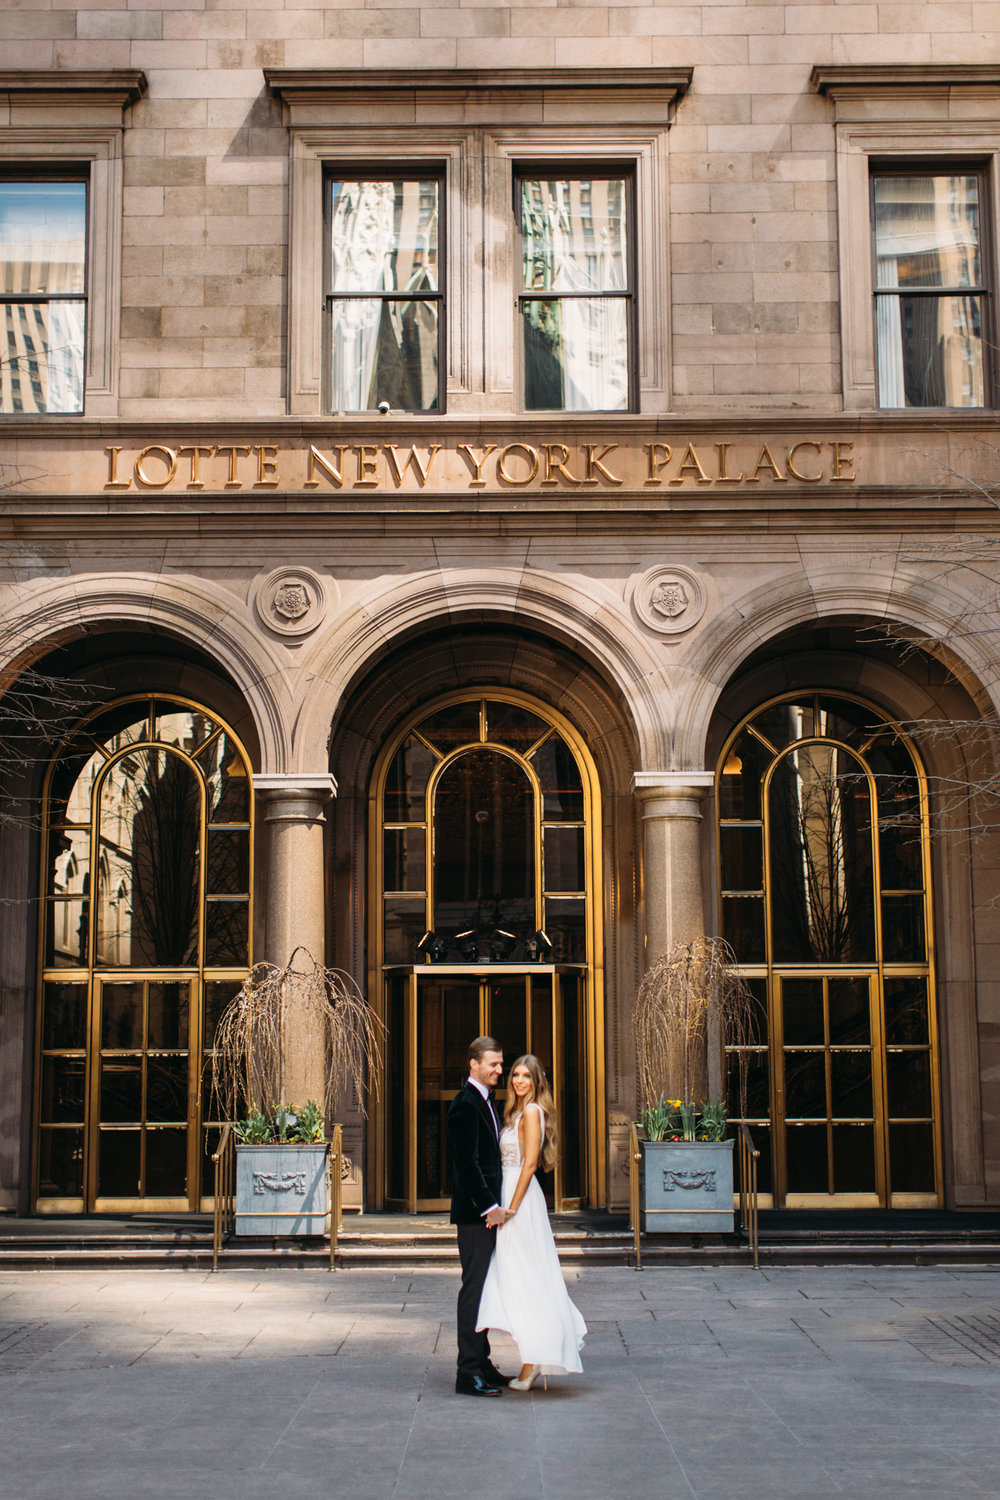 _B2C9686NYC wedding photography manhattan penhouse lotte palace brooklyn wedding photogrpaher boris zaretsky.jpg